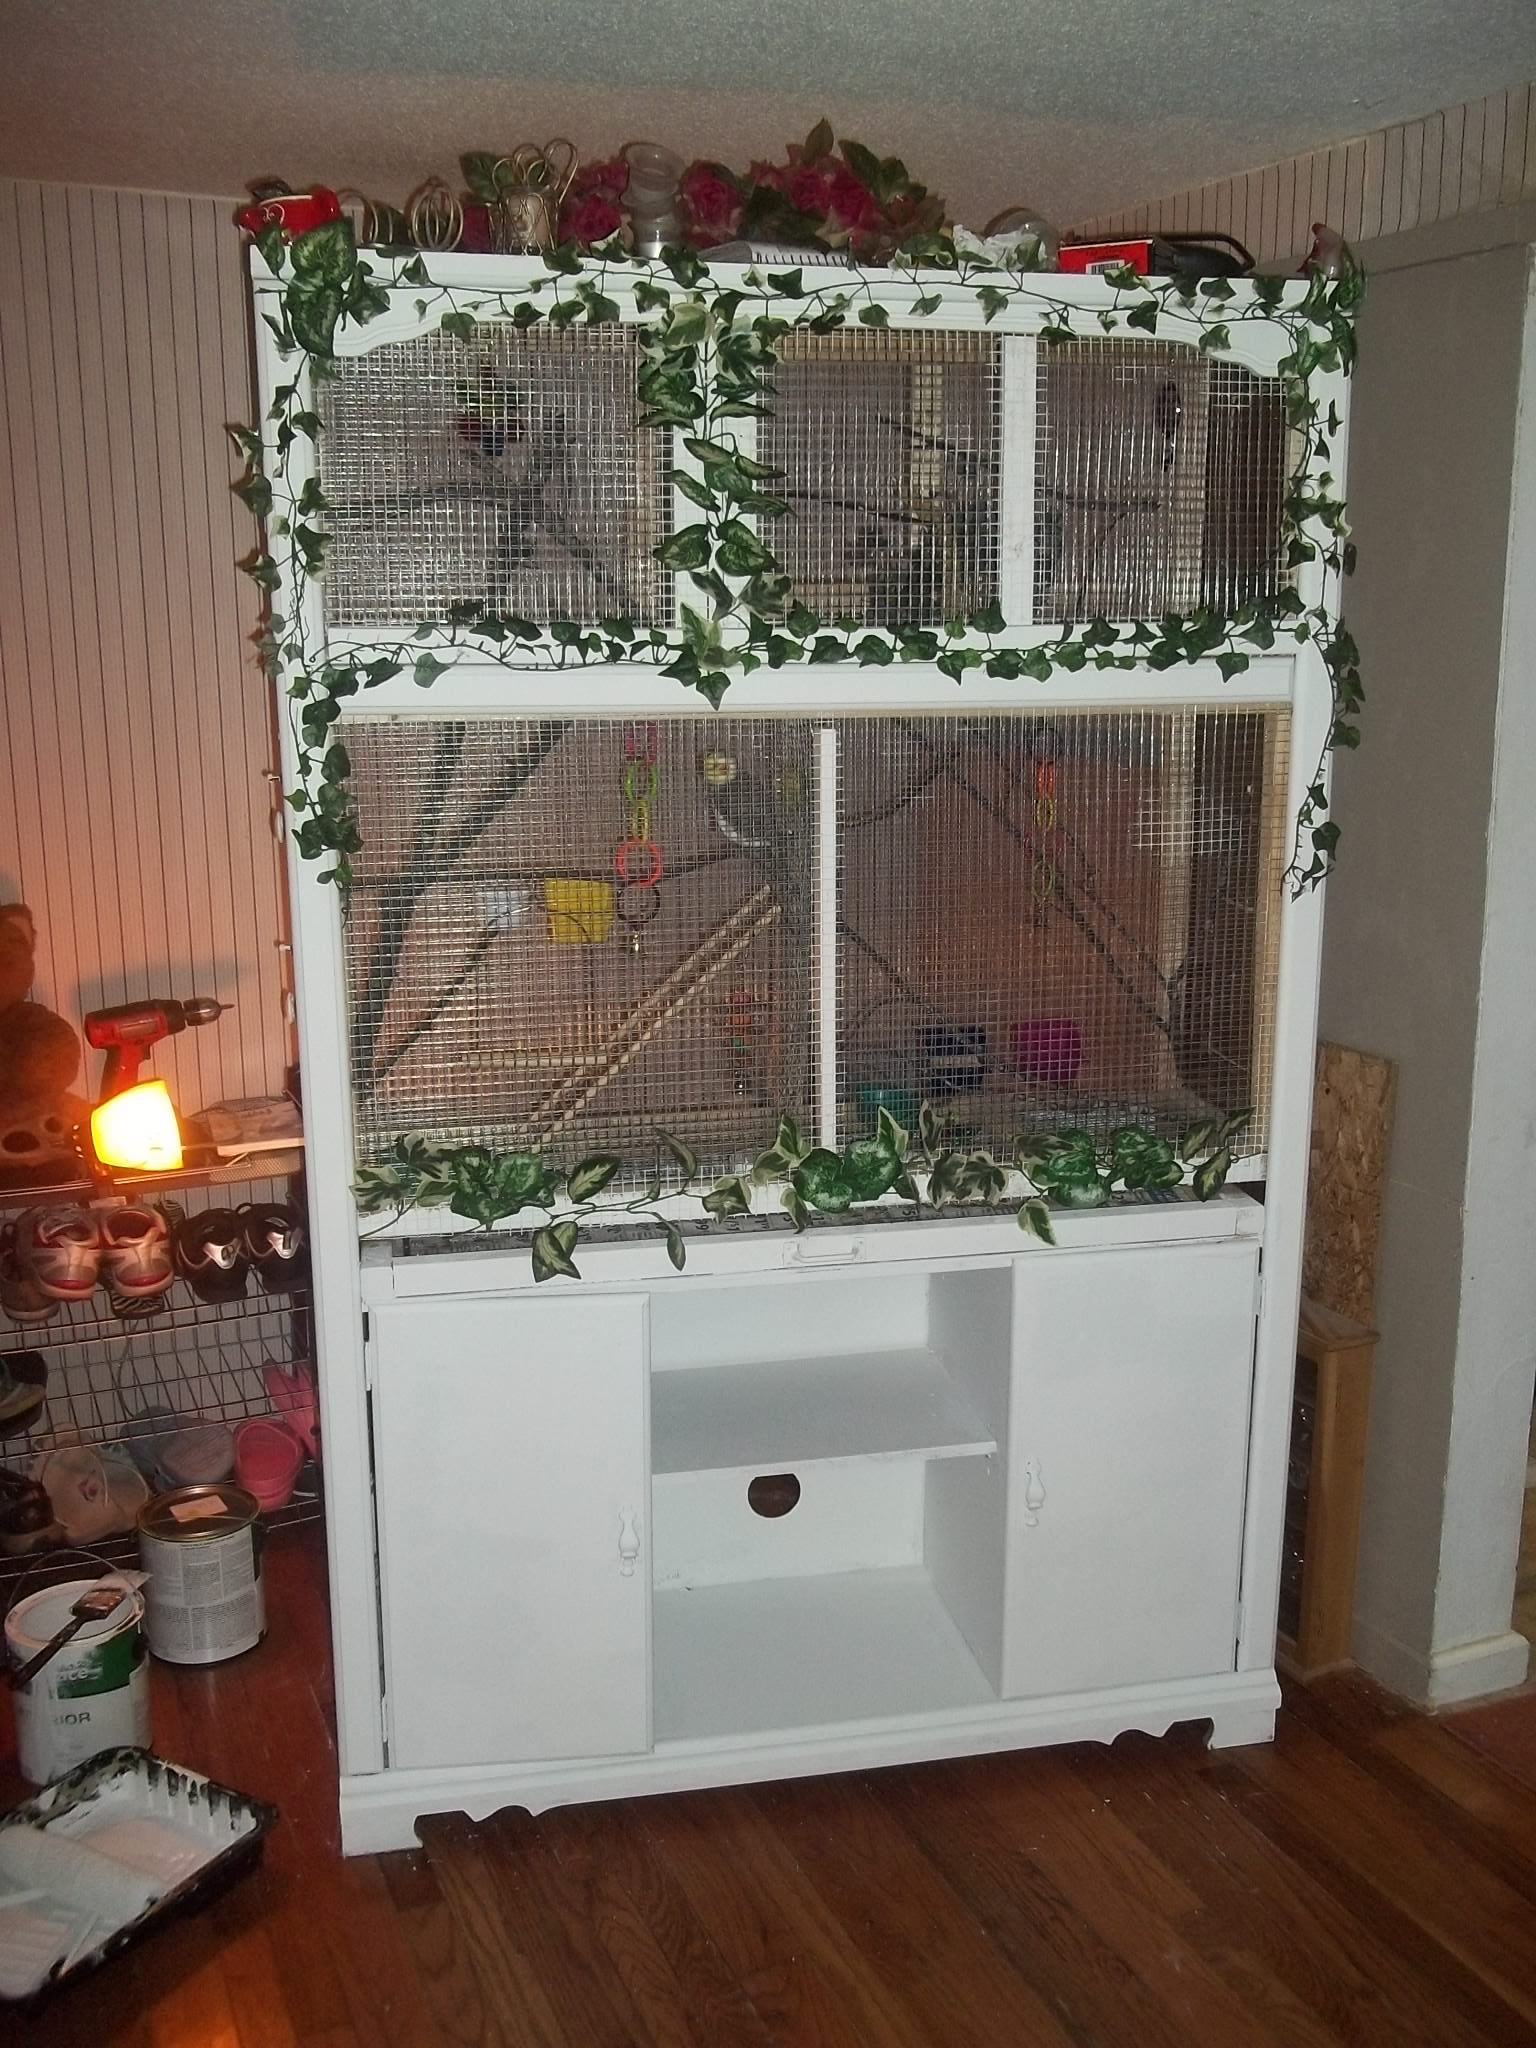 Home Made Bird Aviary ( made from old entertainment center